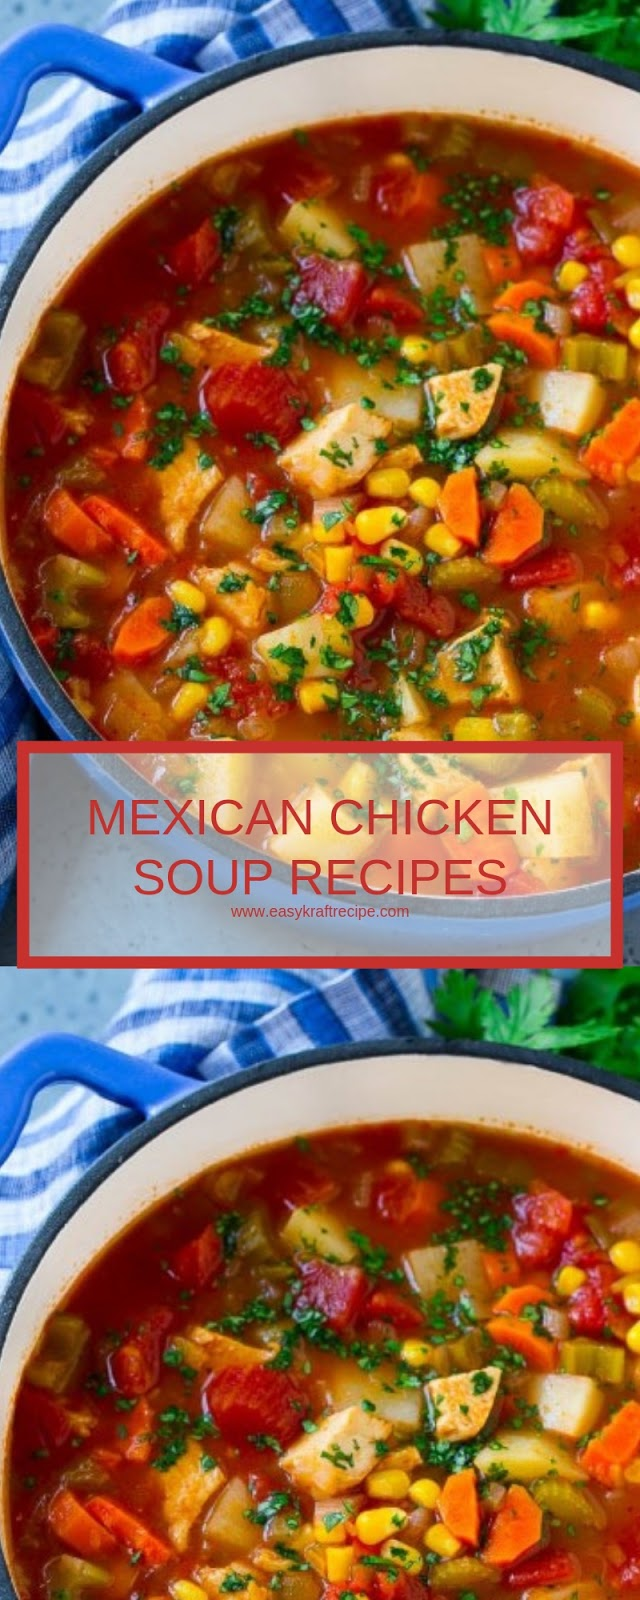 MEXICAN CHICKEN SOUP RECIPES